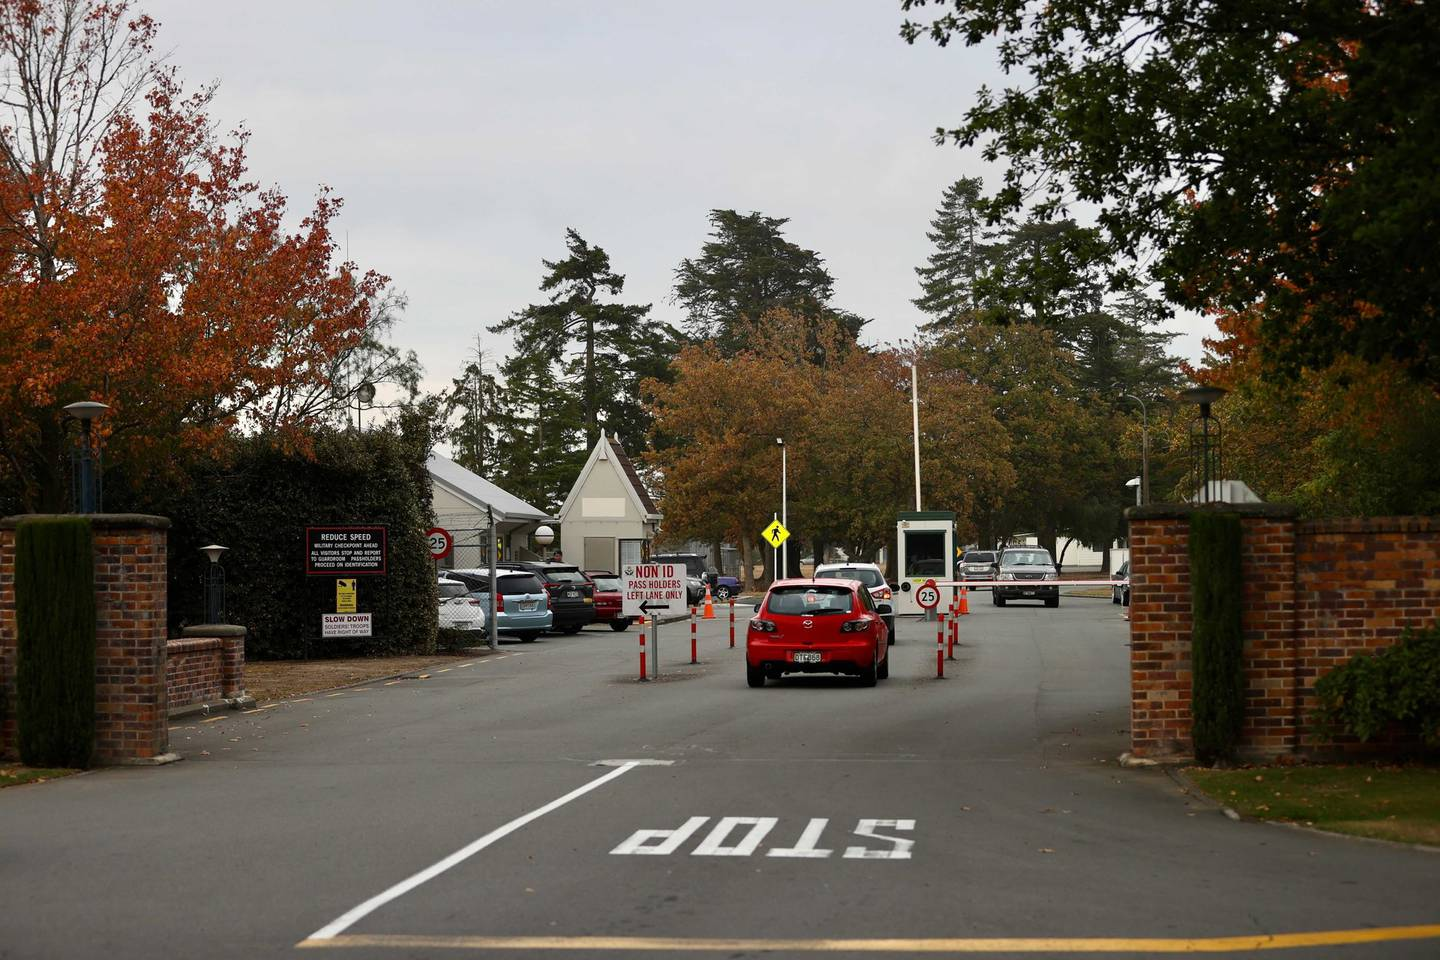 The court martial is being held at Burnham Military Camp outside Christchurch. Photo: George Heard